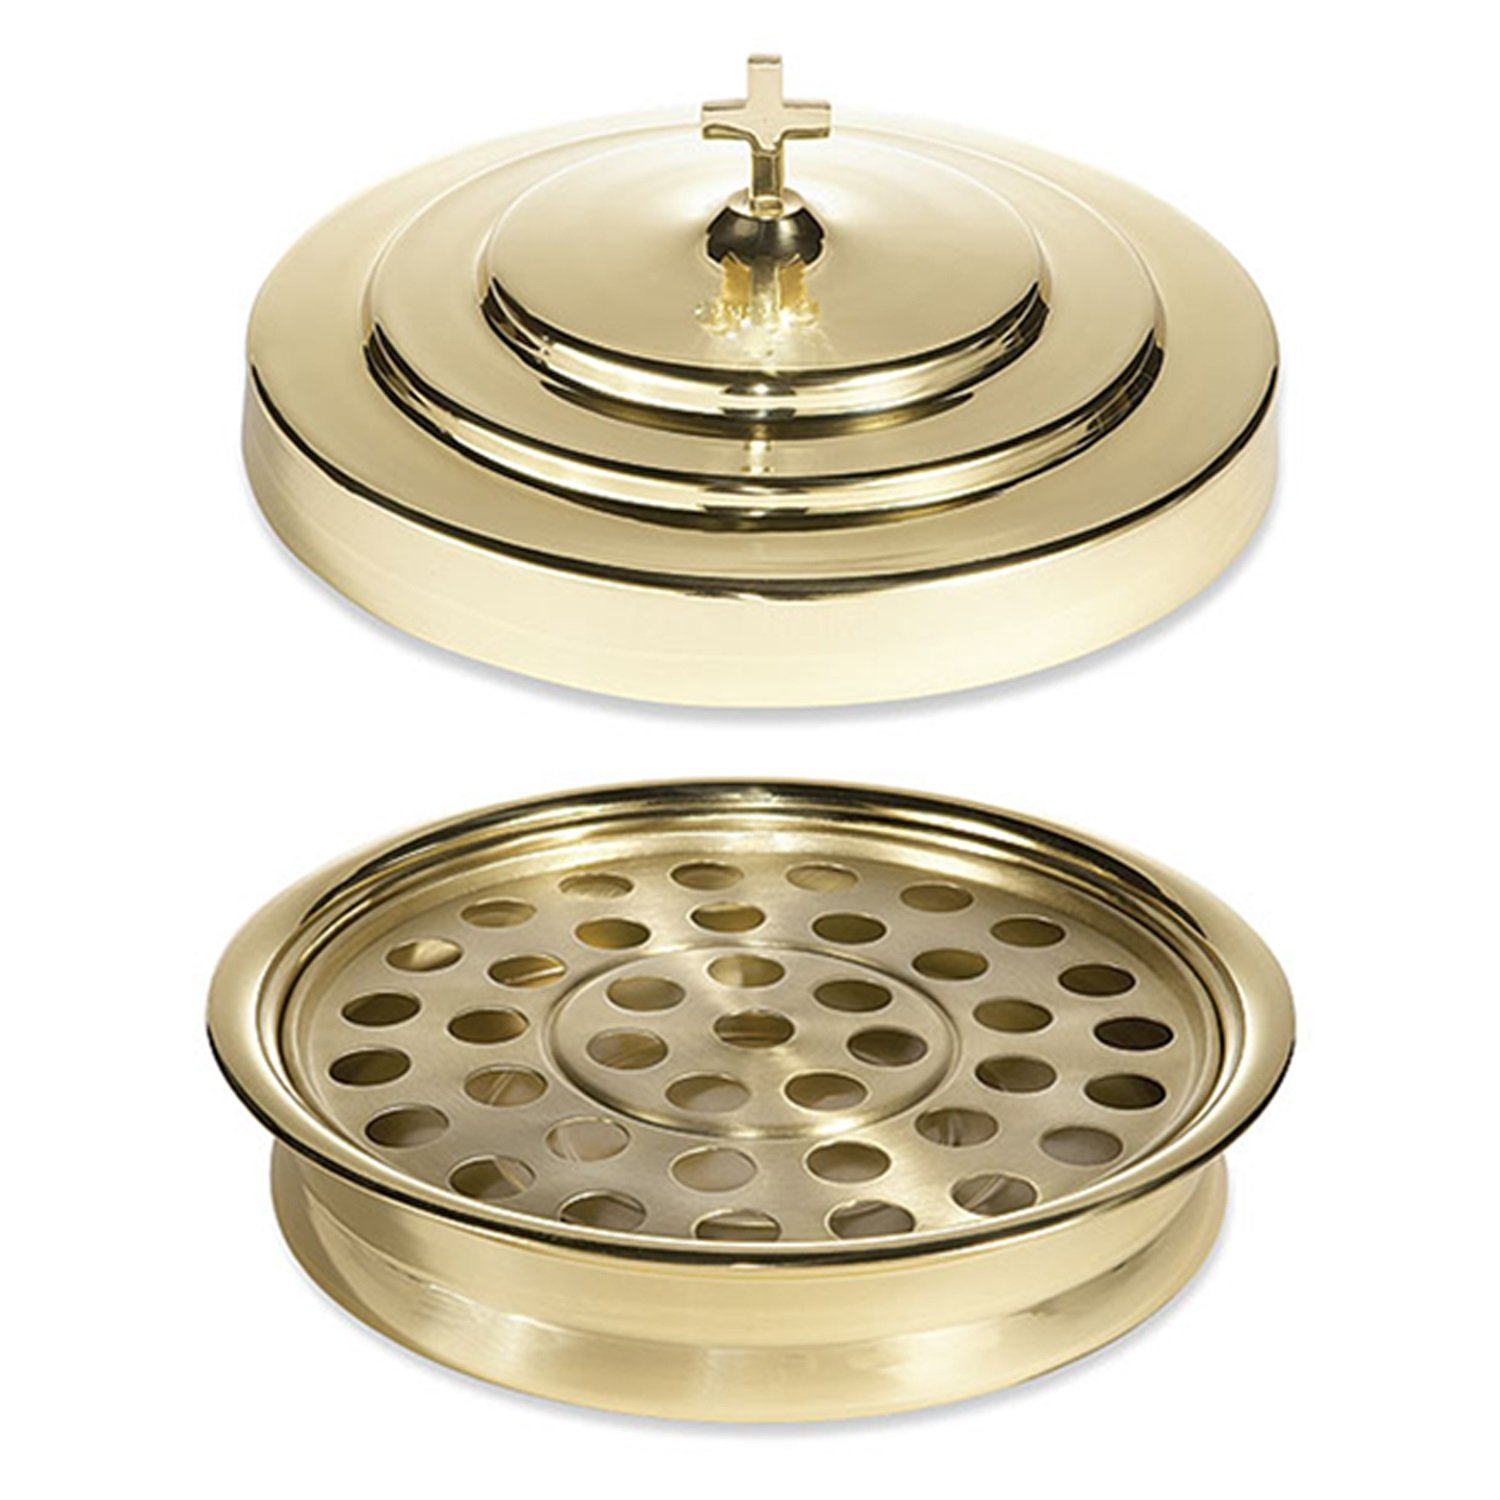 Solid Brass Communion Tray and Cover - Holds 40 Communion Cups by Living Grace by Living Grace